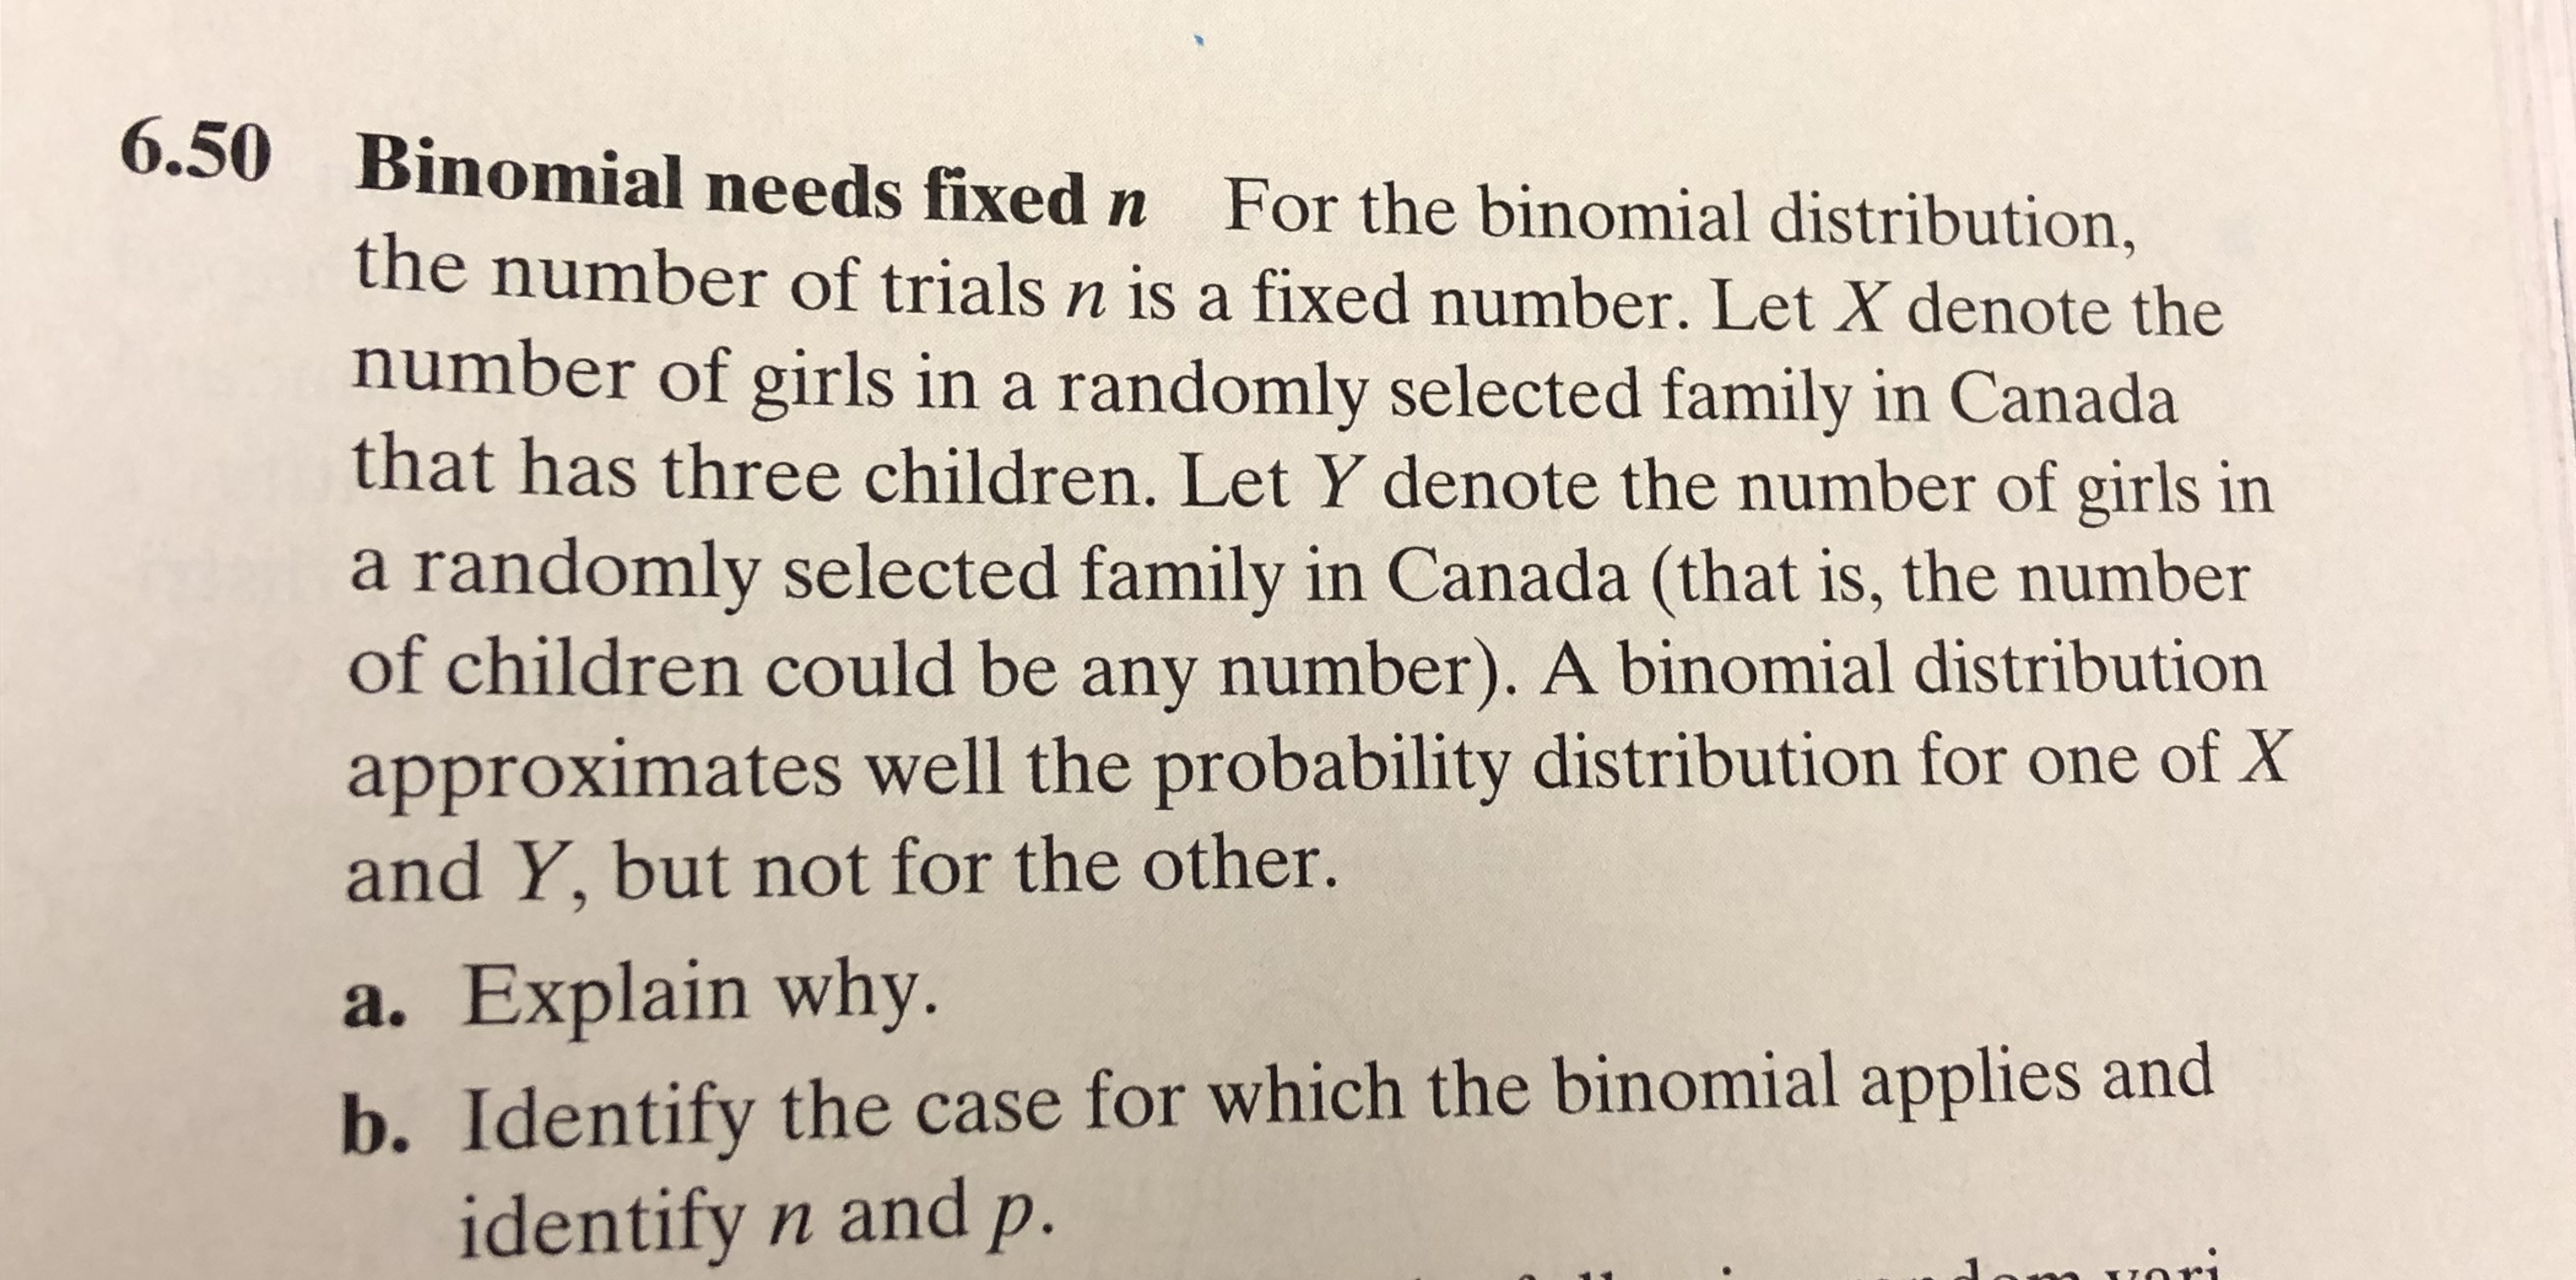 6.50 Binomial needs fixed n For the binomial distribution, the number of trials n is a fixed number. Let X denote the number of girls in a randomly selected family in Canada that has three children. Let Y denote the number of girls in a randomly selected family in Canada (that is, the number of children could be any number). A binomial distribution approximates well the probability distribution for one of X and Y, but not for the other. a. Explain why b. Identify the case for which the binomial applies and identify n andp. m vori